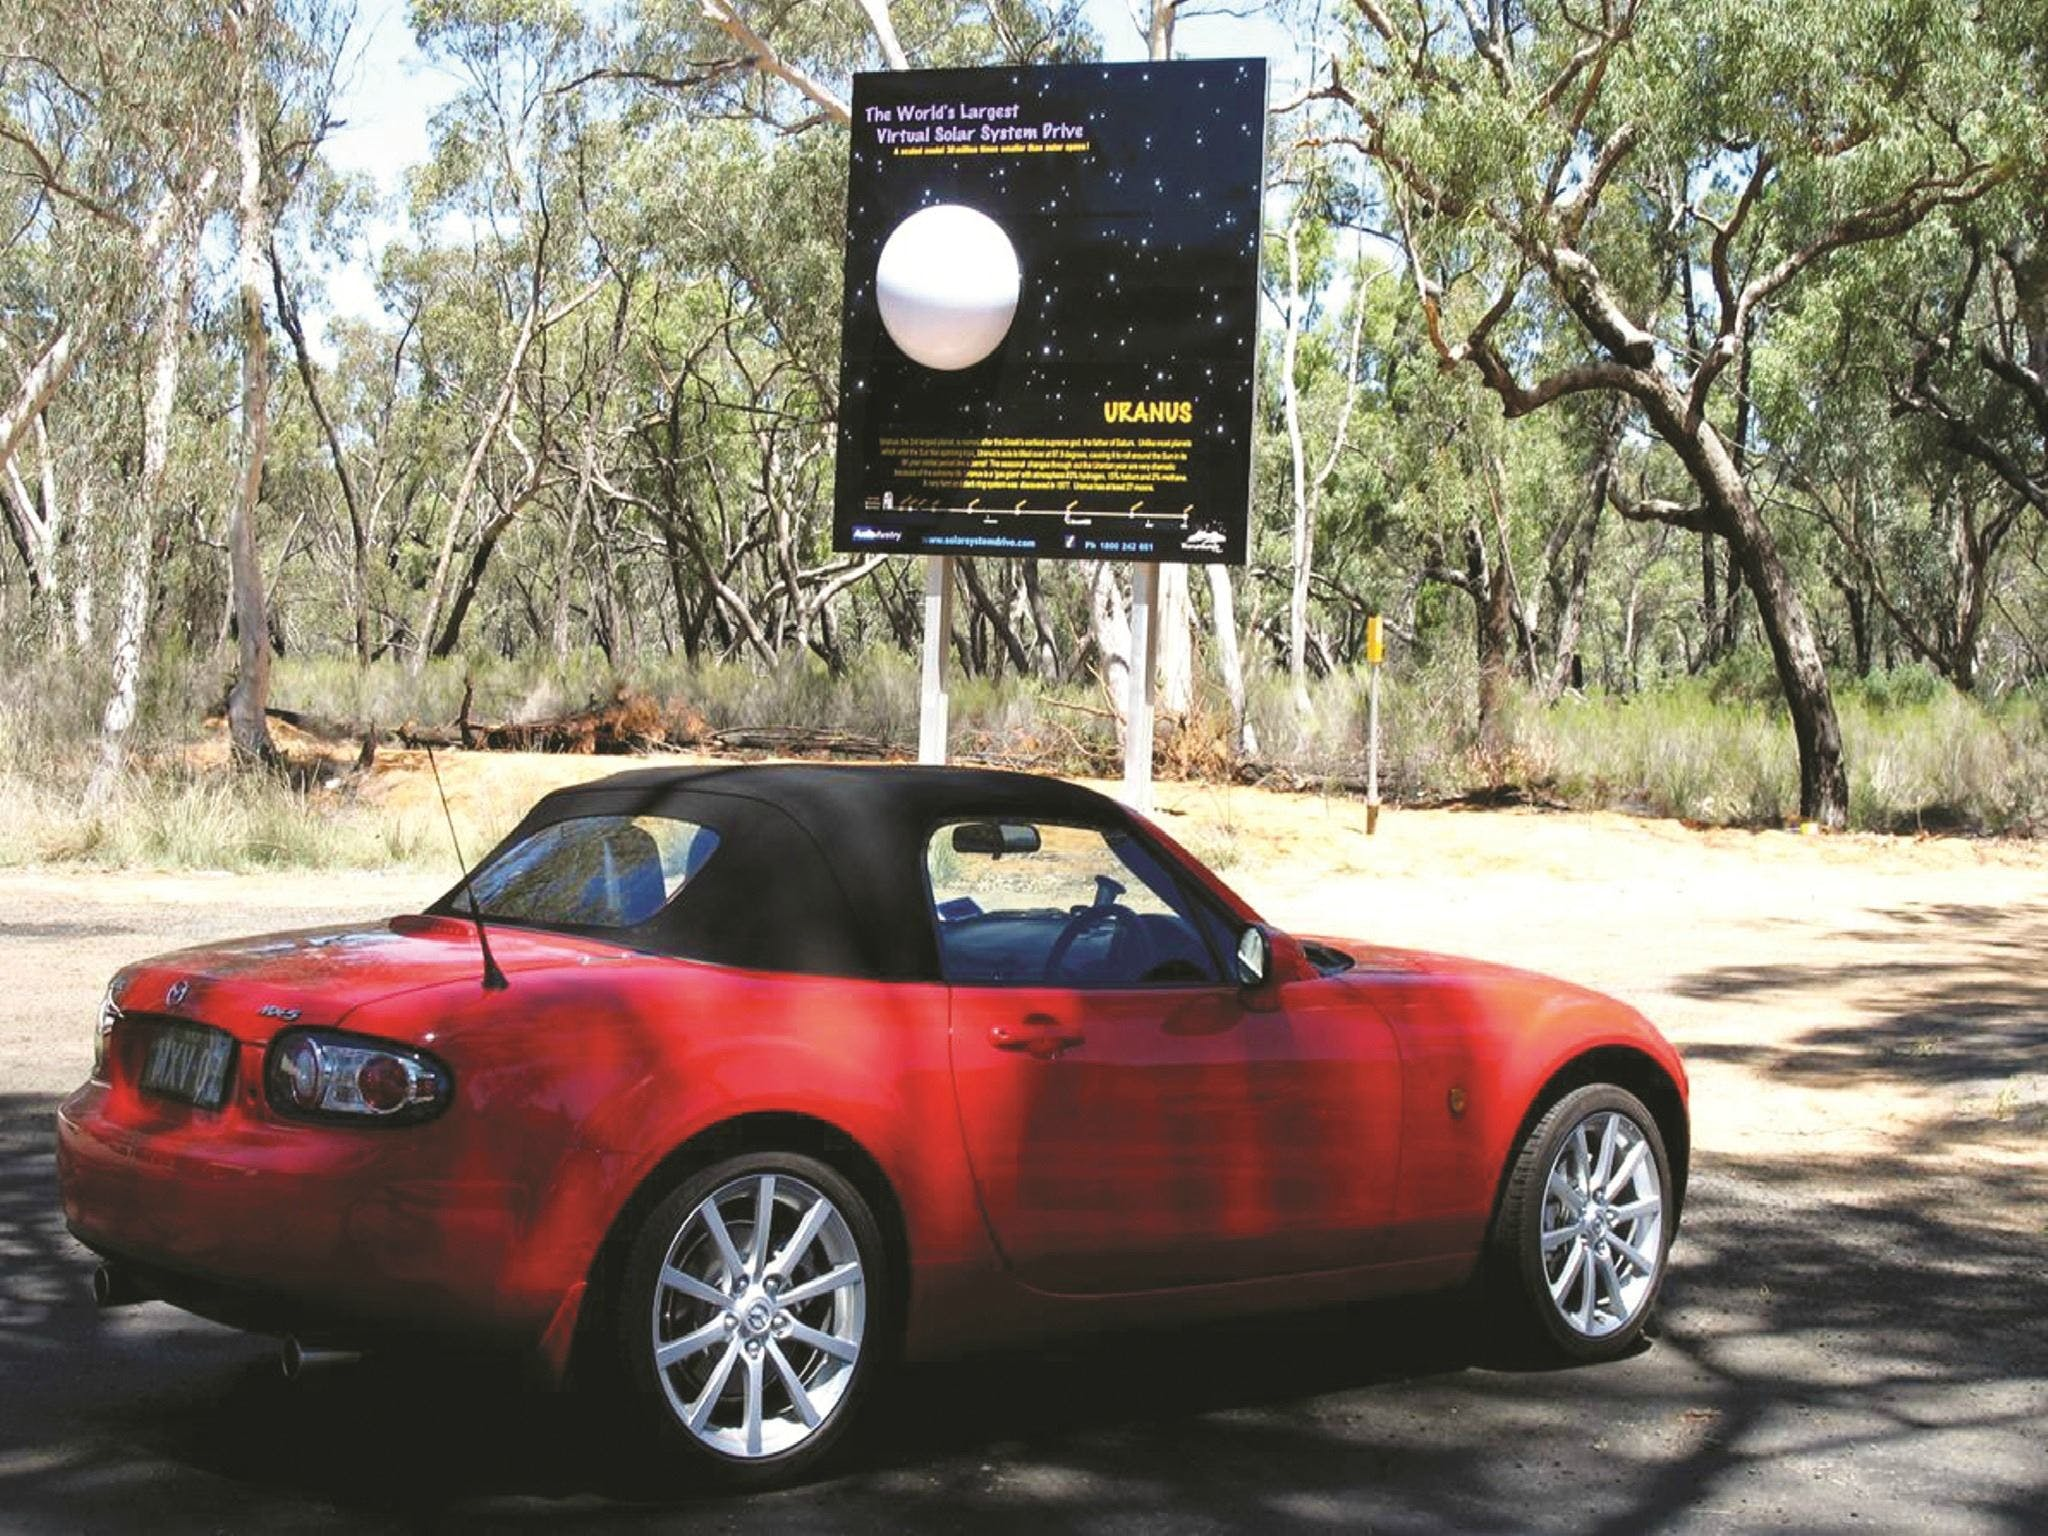 Worlds Largest Virtual Solar System Drive - Australia Accommodation